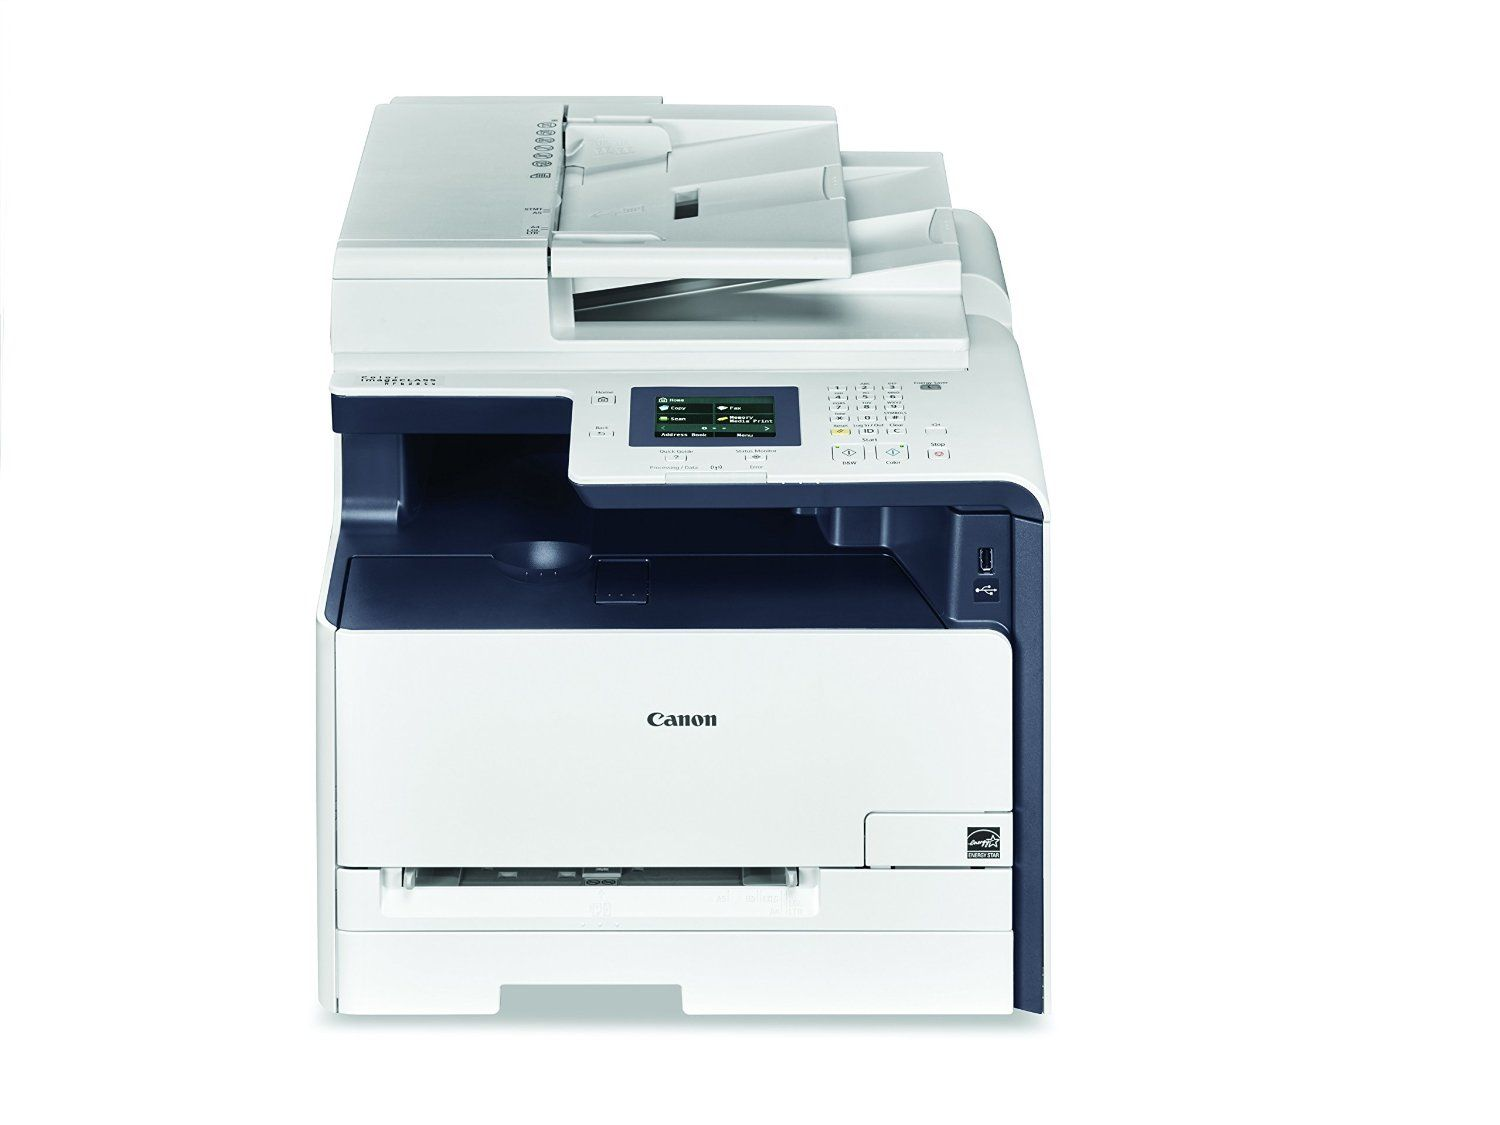 Color printing in windows 10 - Amazon Com Canon Office Products Mf628cw Imageclass Wireless Color Printer With Scanner Copier